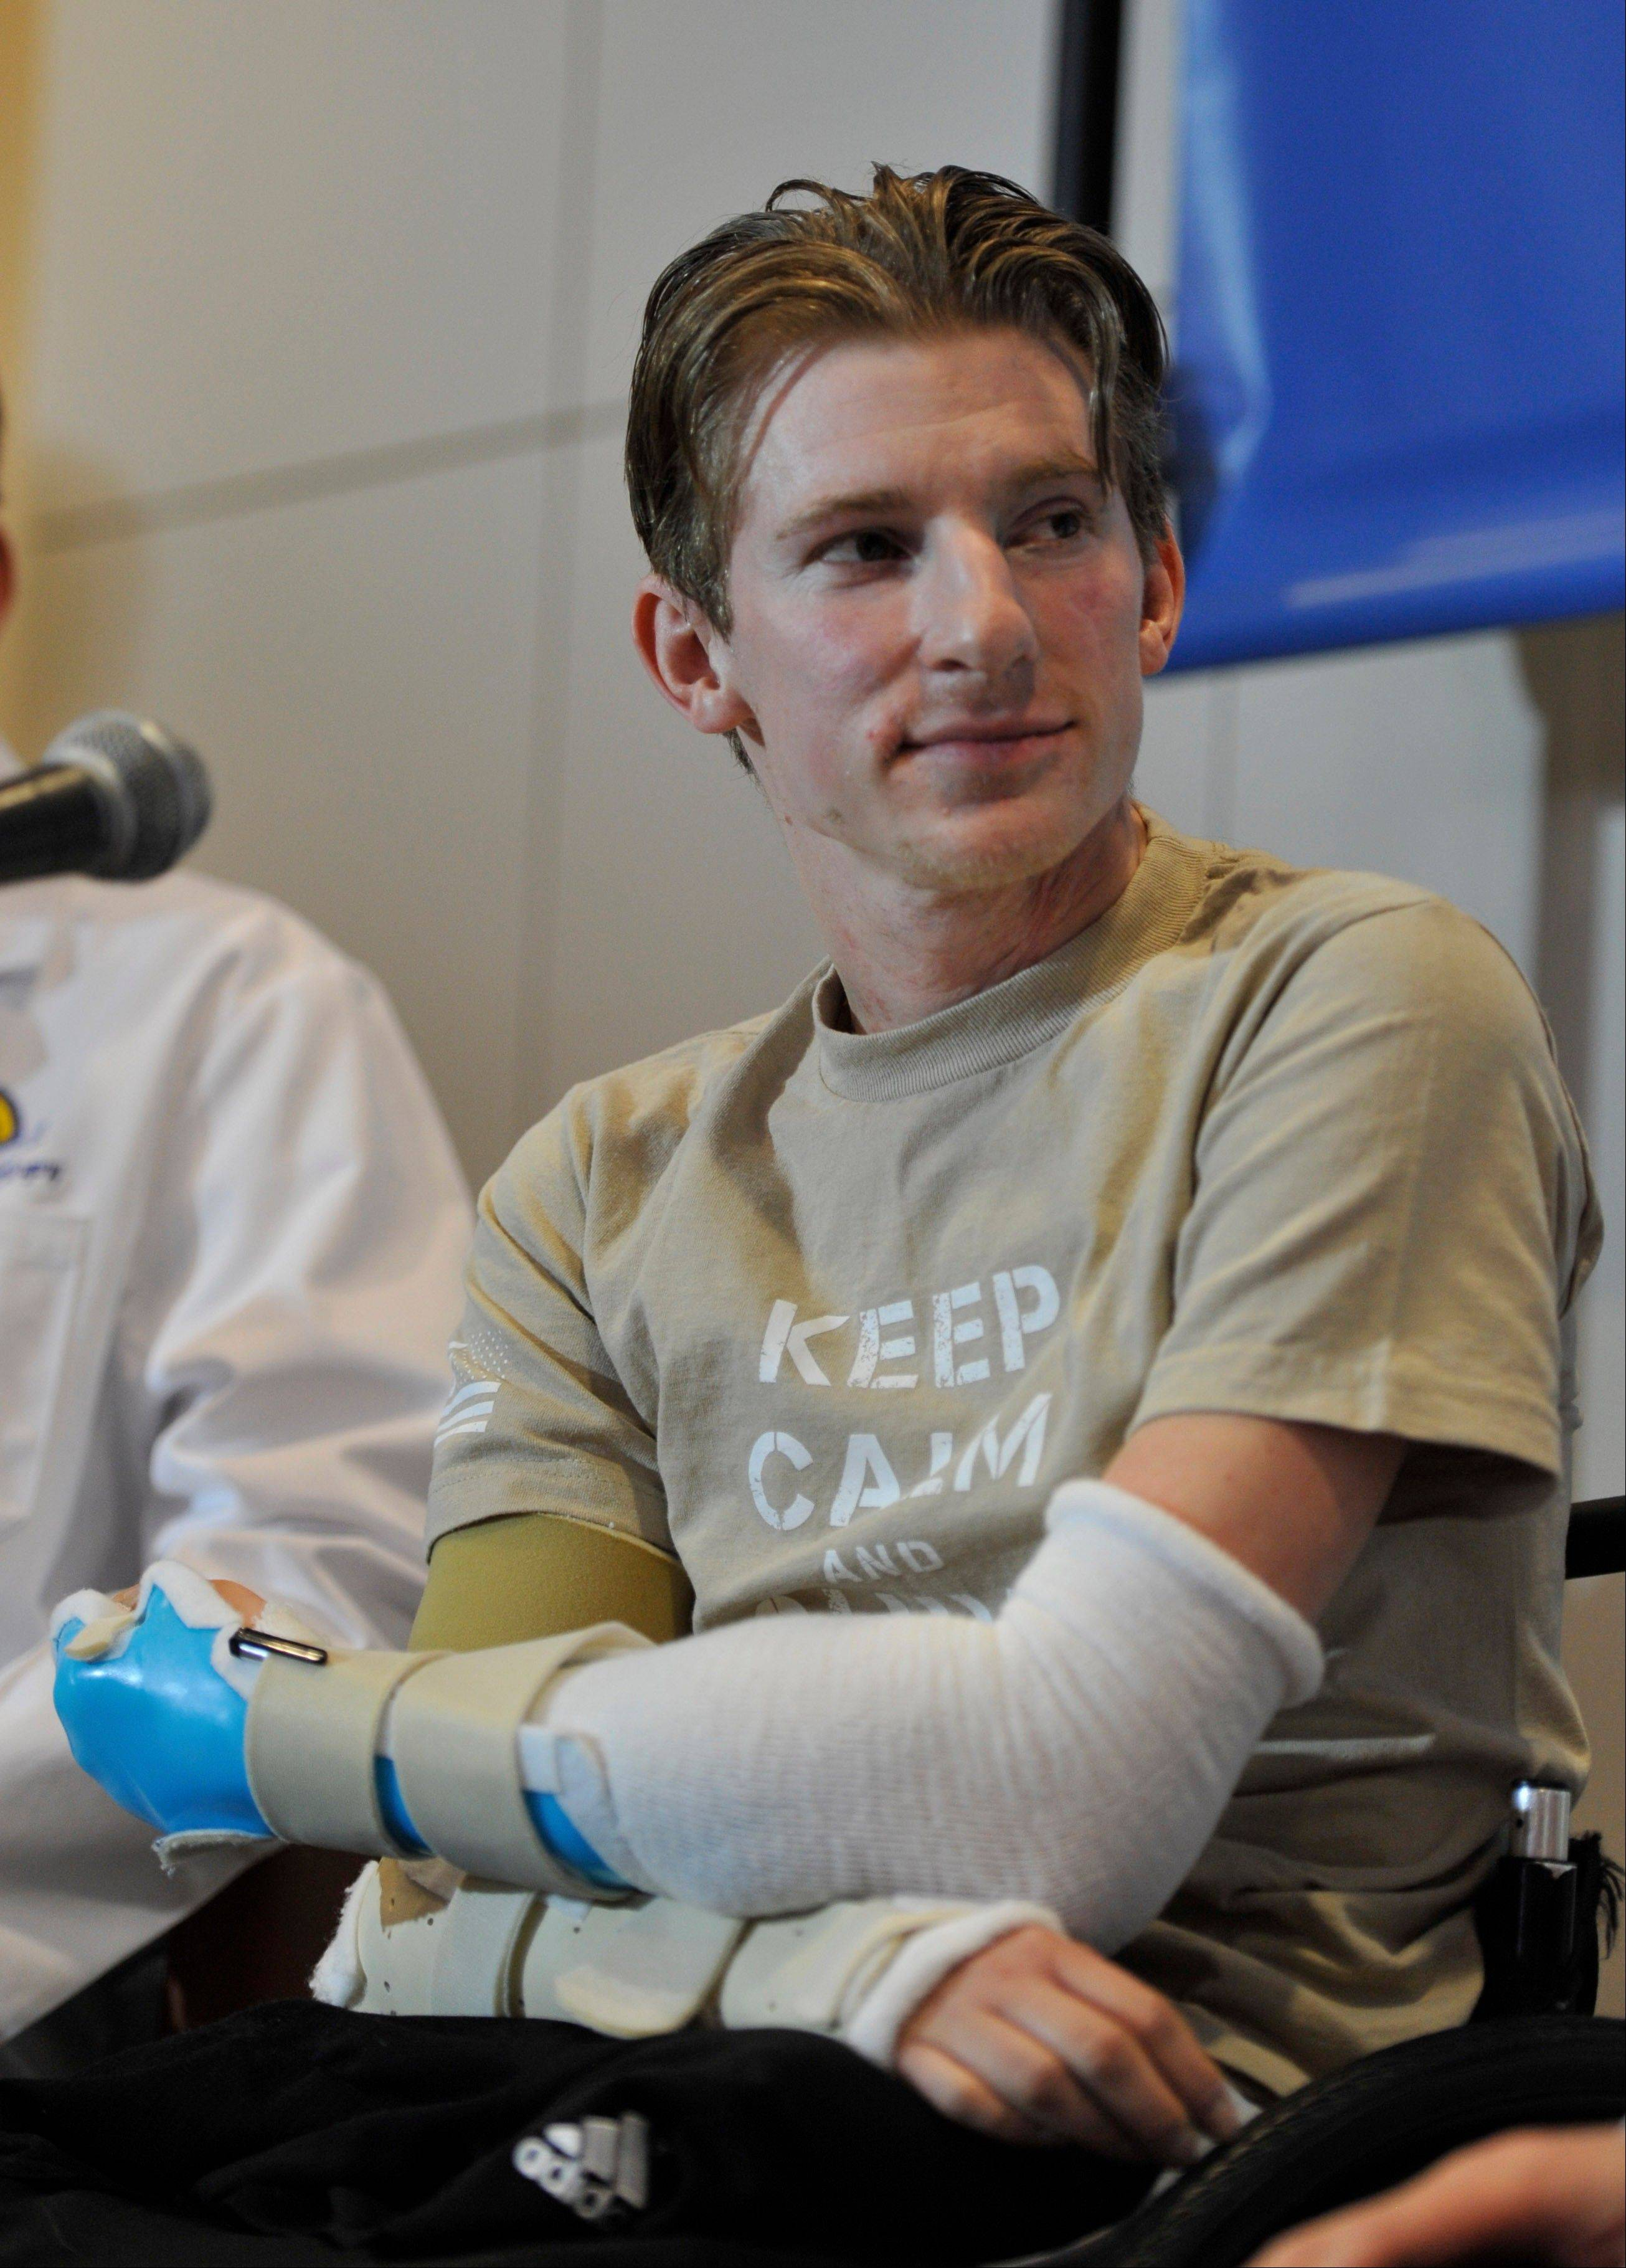 Retired Infantryman Brendan M. Marrocco attends a news conference Tuesday at Johns Hopkins Hospital in Baltimore. Marrocco received a transplant of two arms from a deceased donor after losing all four limbs in a 2009 roadside bomb attack in Iraq.